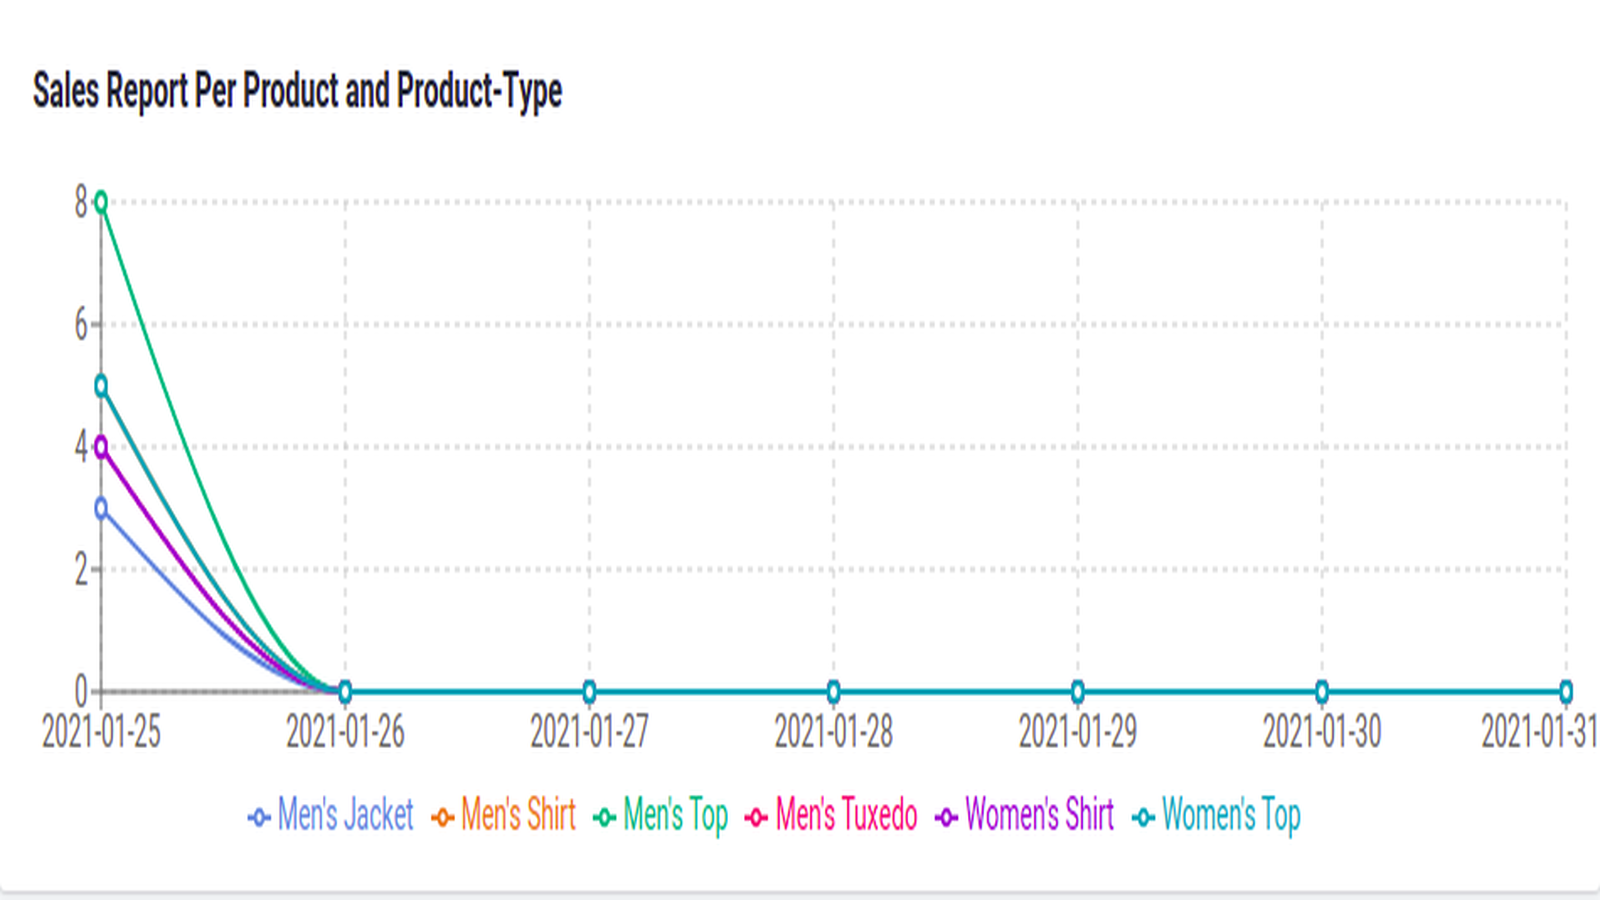 Sales per product category in last week